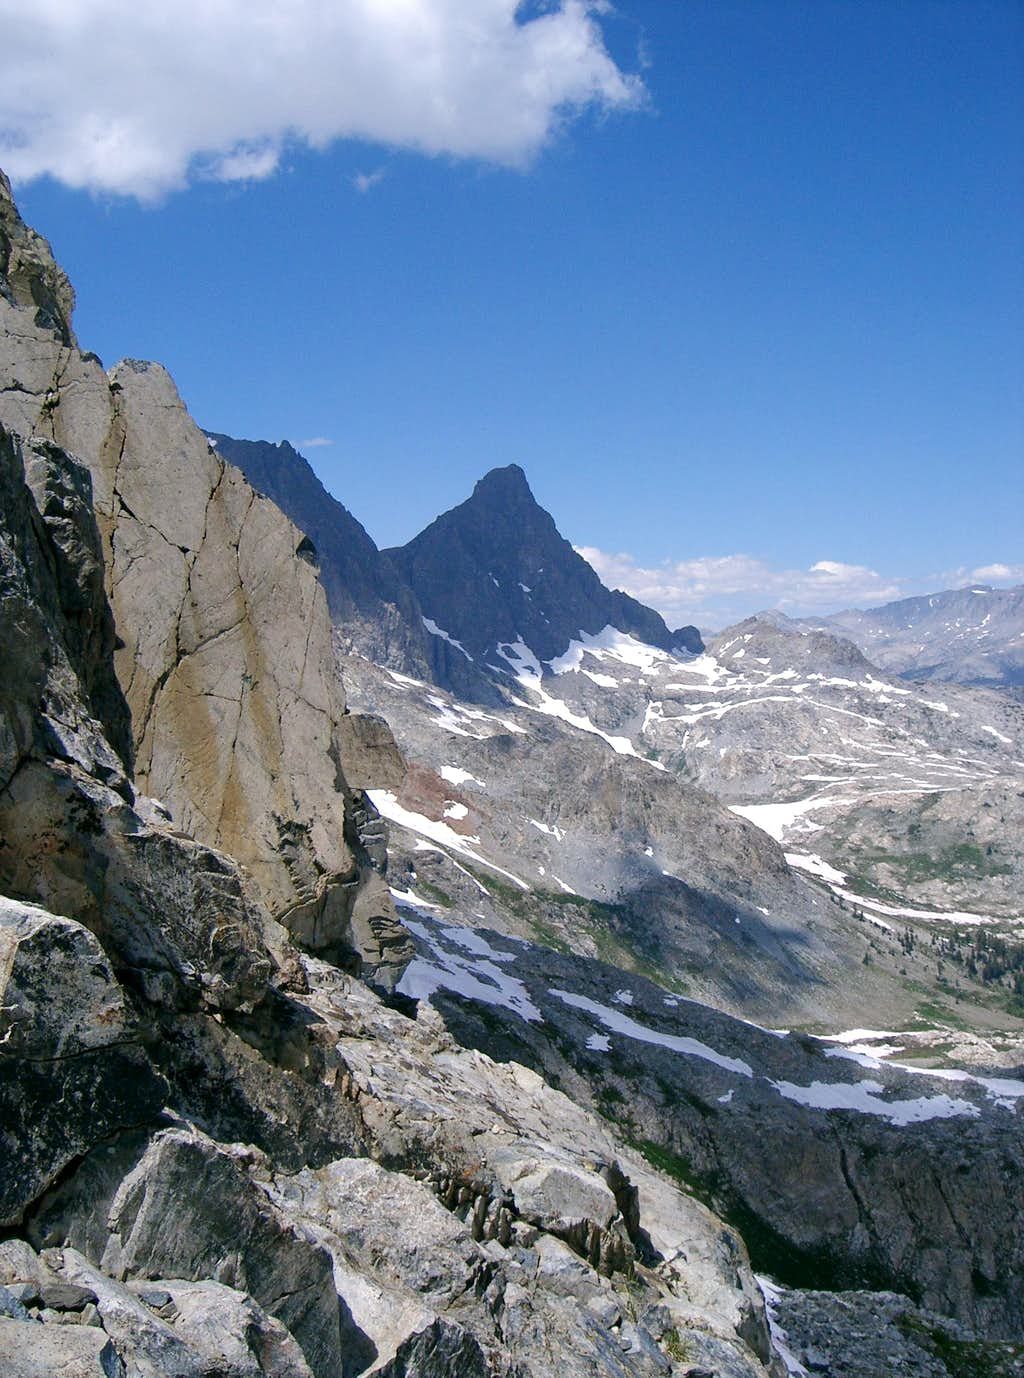 Banner Peak from Rock Route on Clyde Minaret.